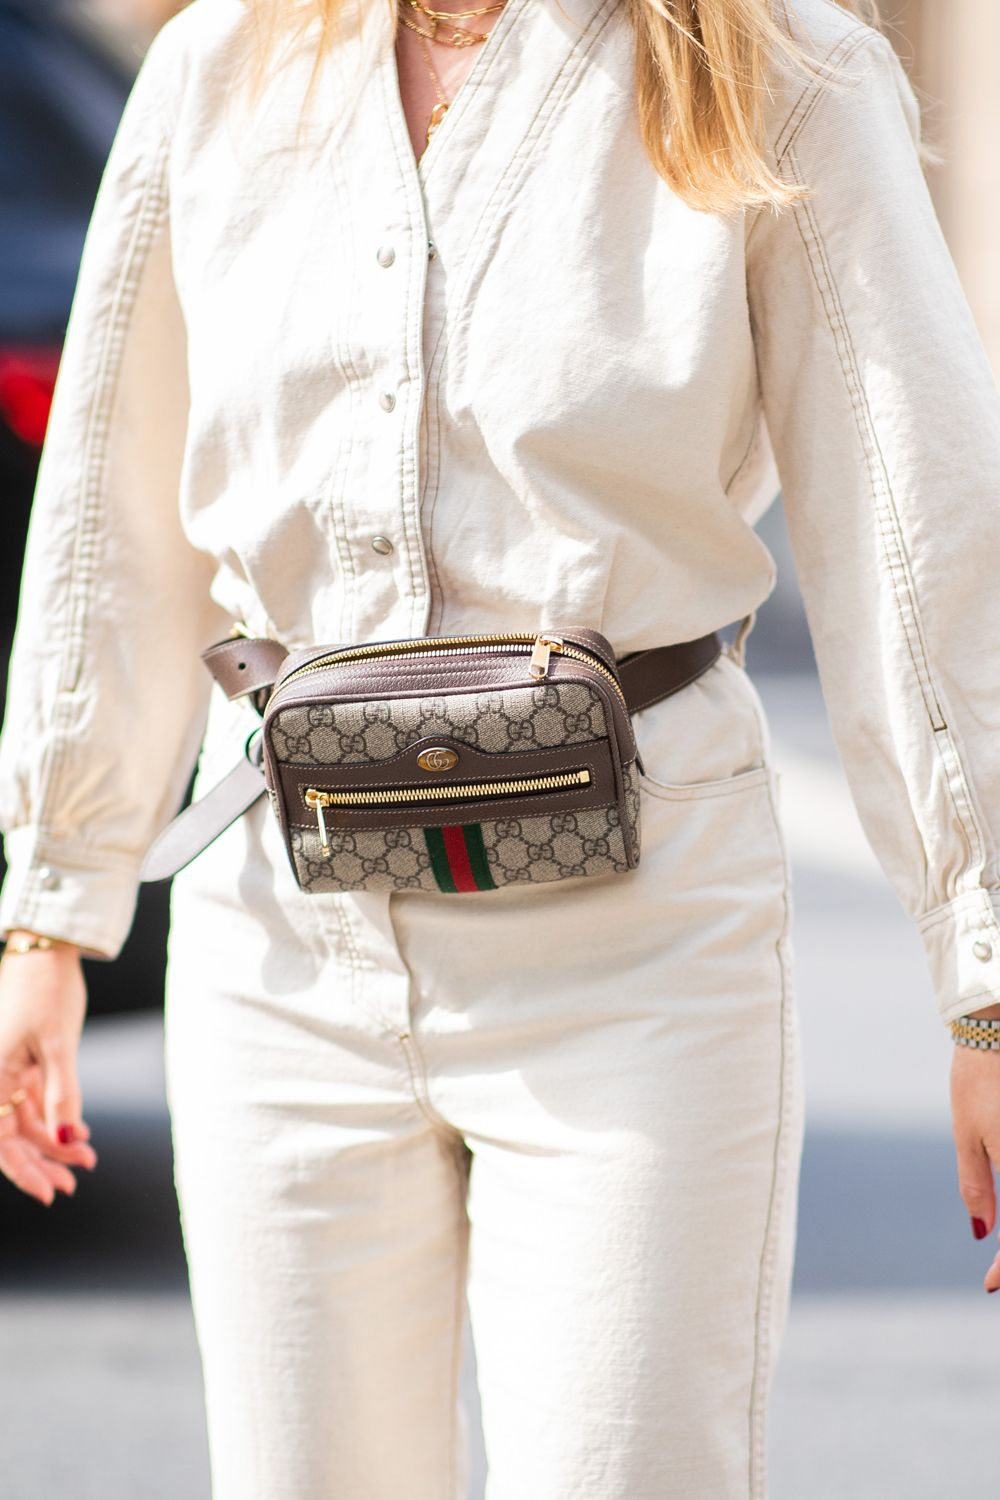 undefined 265463 1534505956963 image.1000x1500uc - 10 Extra Inexpensive Methods to Add Gucci Into Your Wardrobe